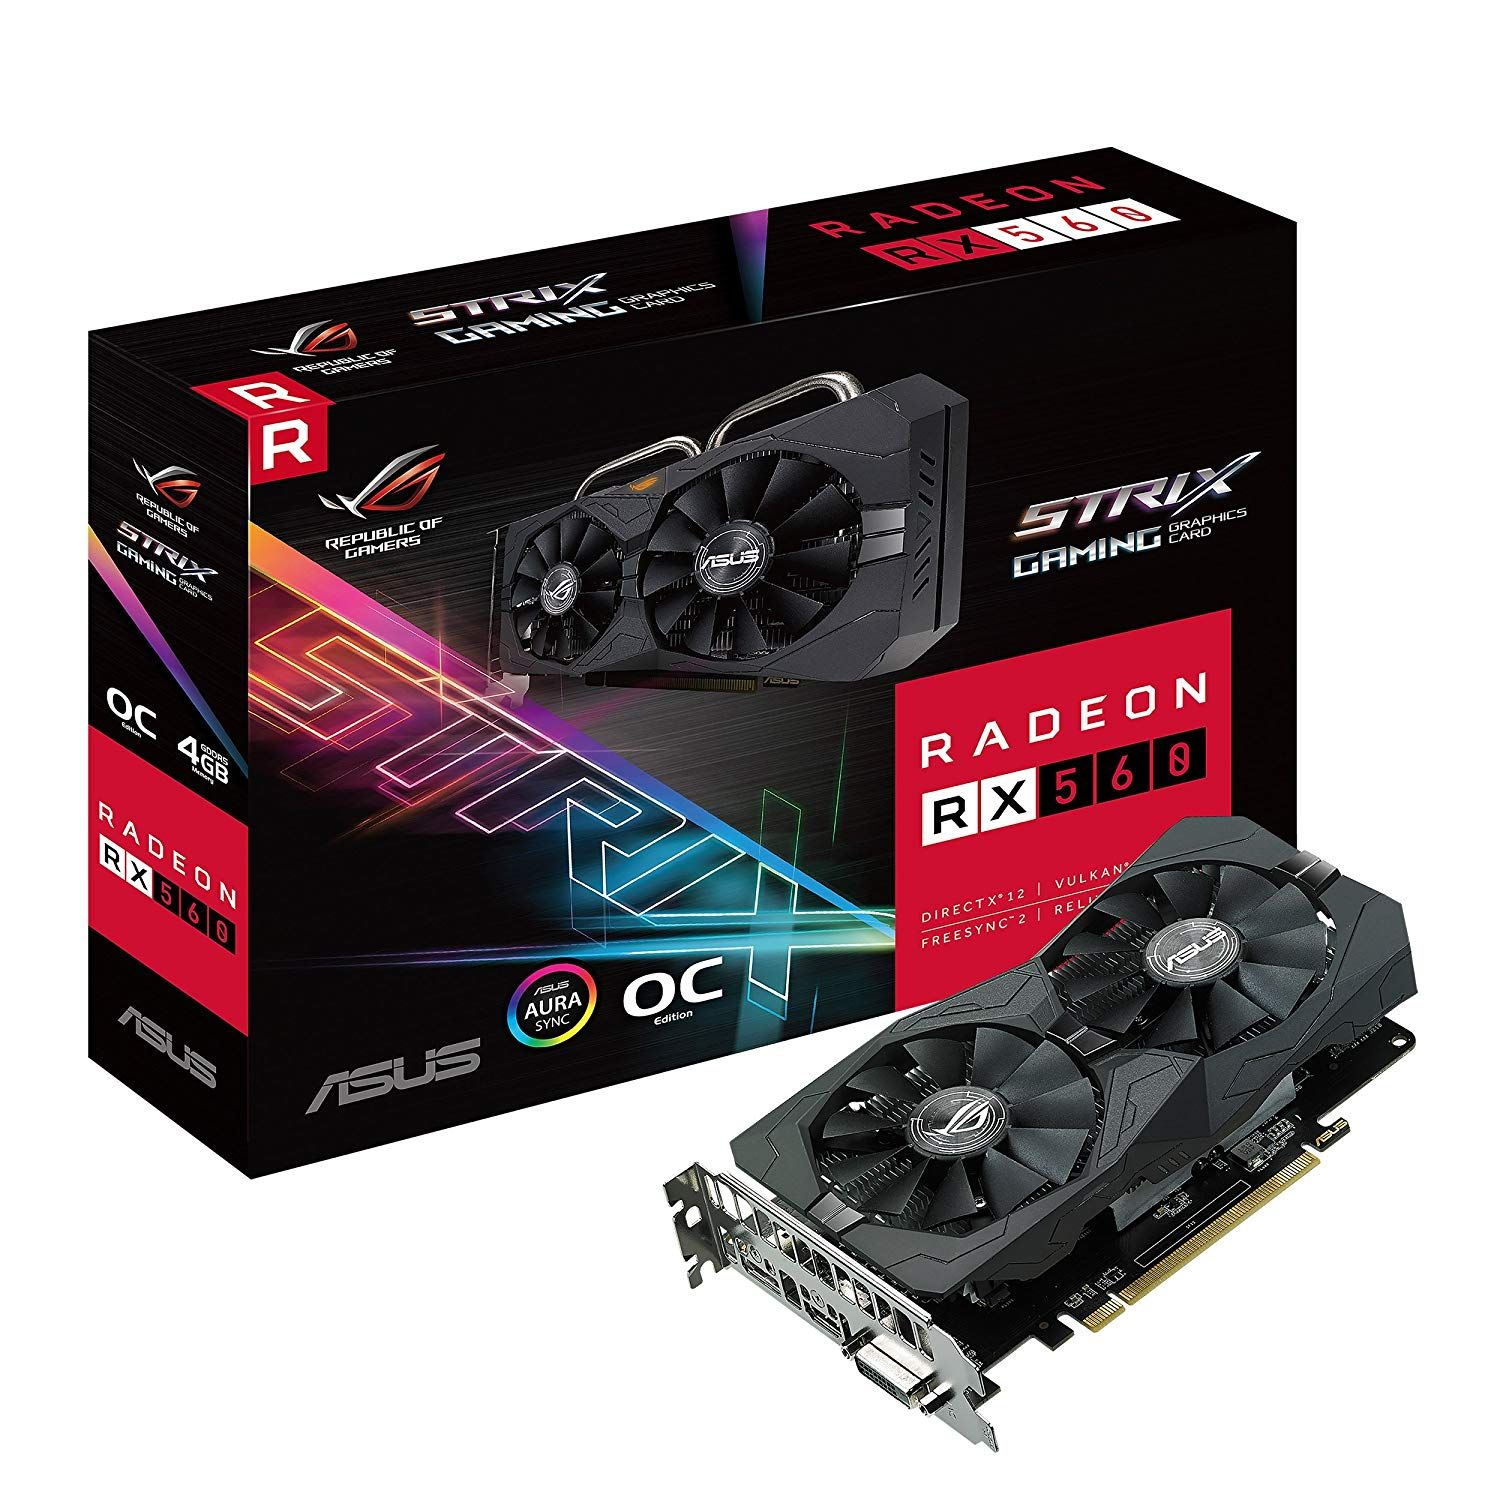 Top 10 Best Asus Graphics Cards For Gaming In 2020 Reviews Asus Rog Best Laptops System Monitor